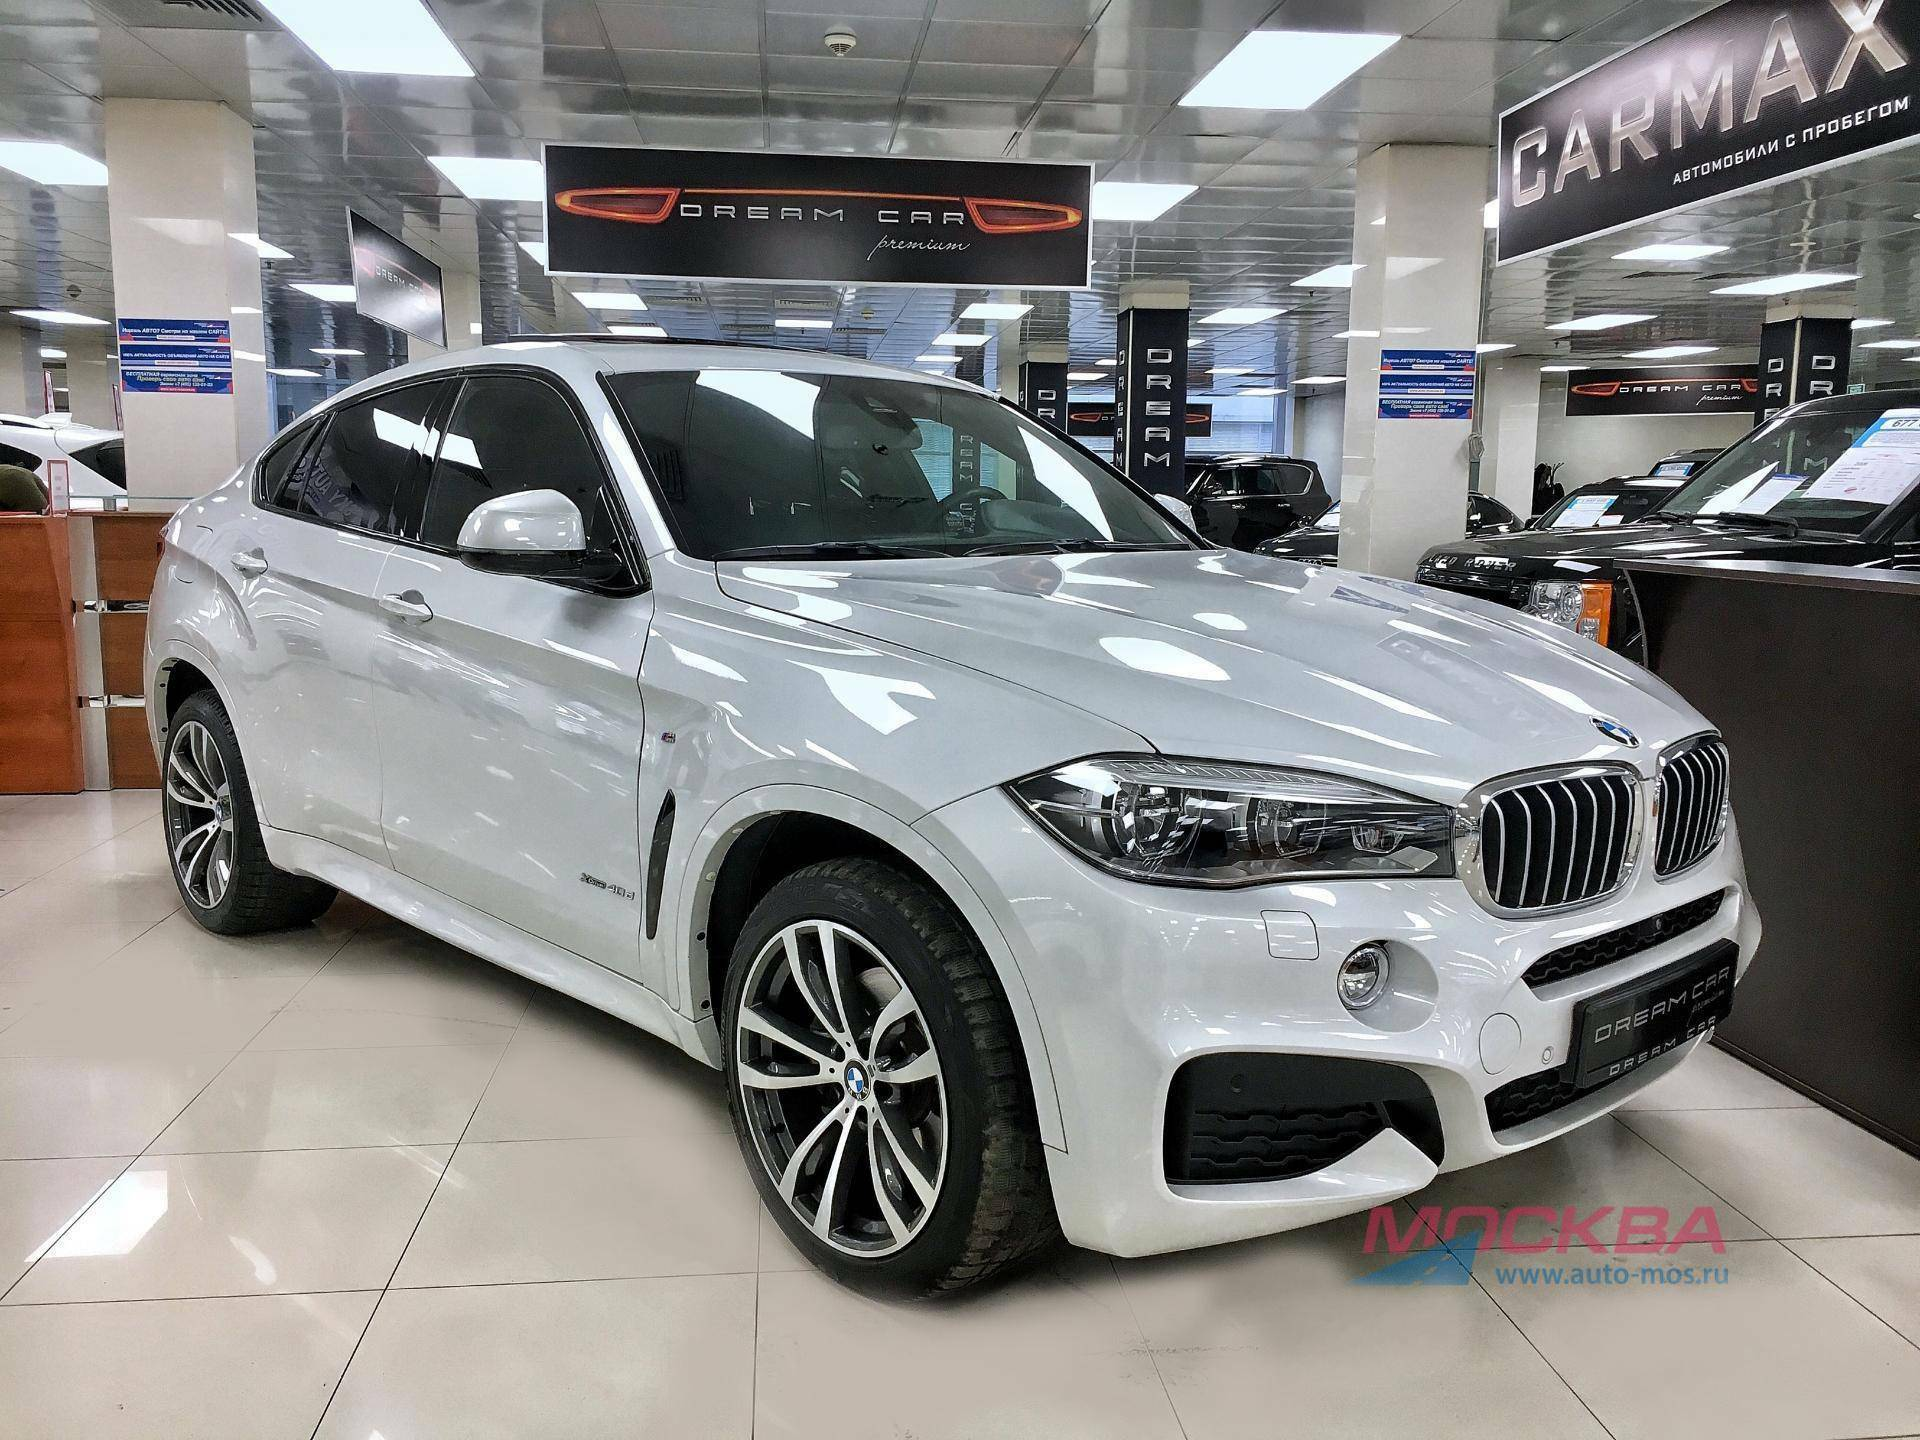 Обзор BMW X6 xDrive40d Steptronic (313 л.с.) 2017 год